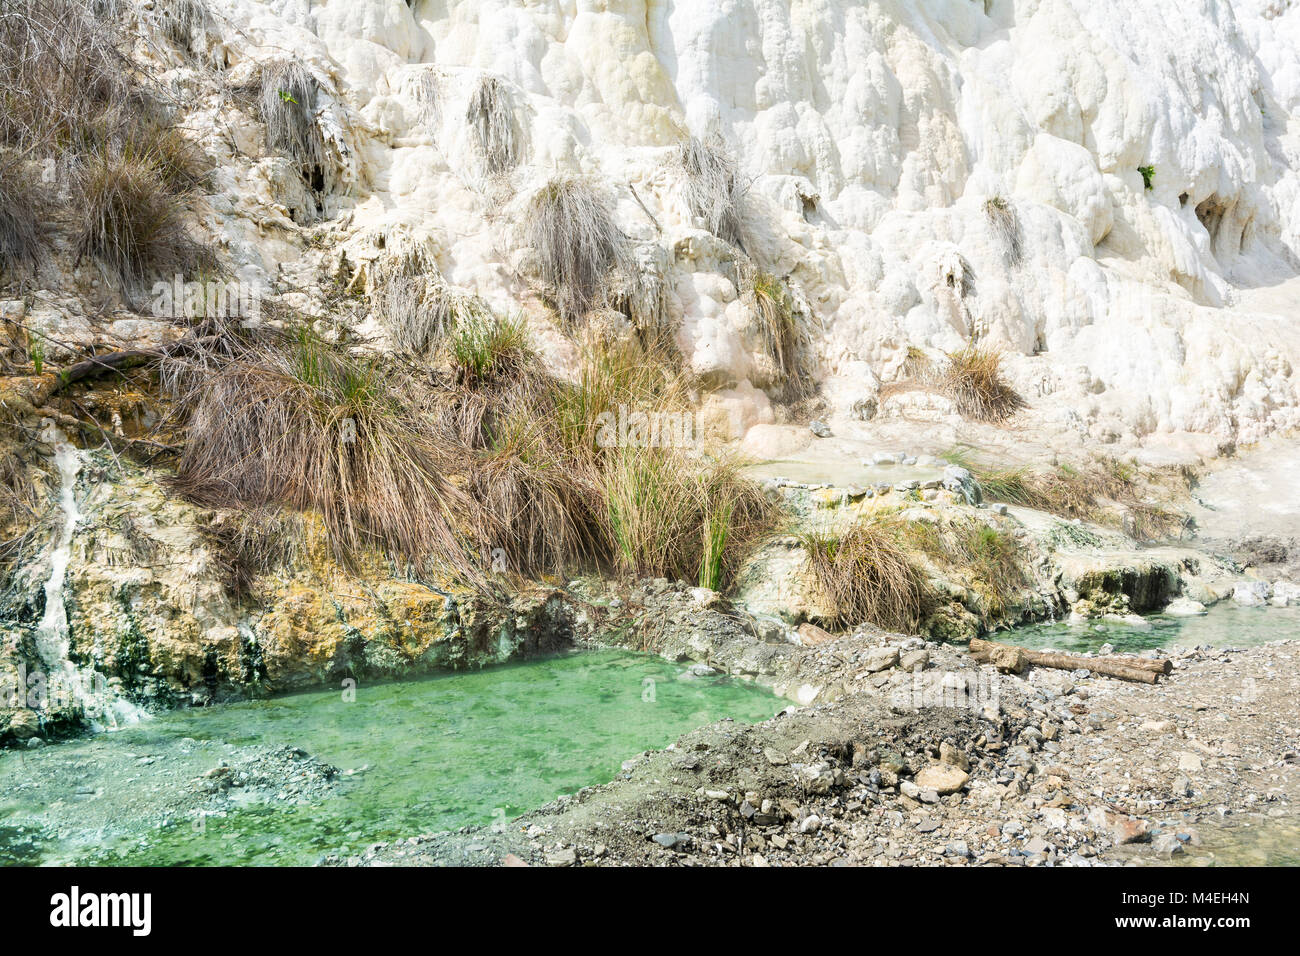 http://c8.alamy.com/comp/M4EH4N/limestone-formations-at-the-hot-springs-of-the-bagni-di-san-filippo-M4EH4N.jpg